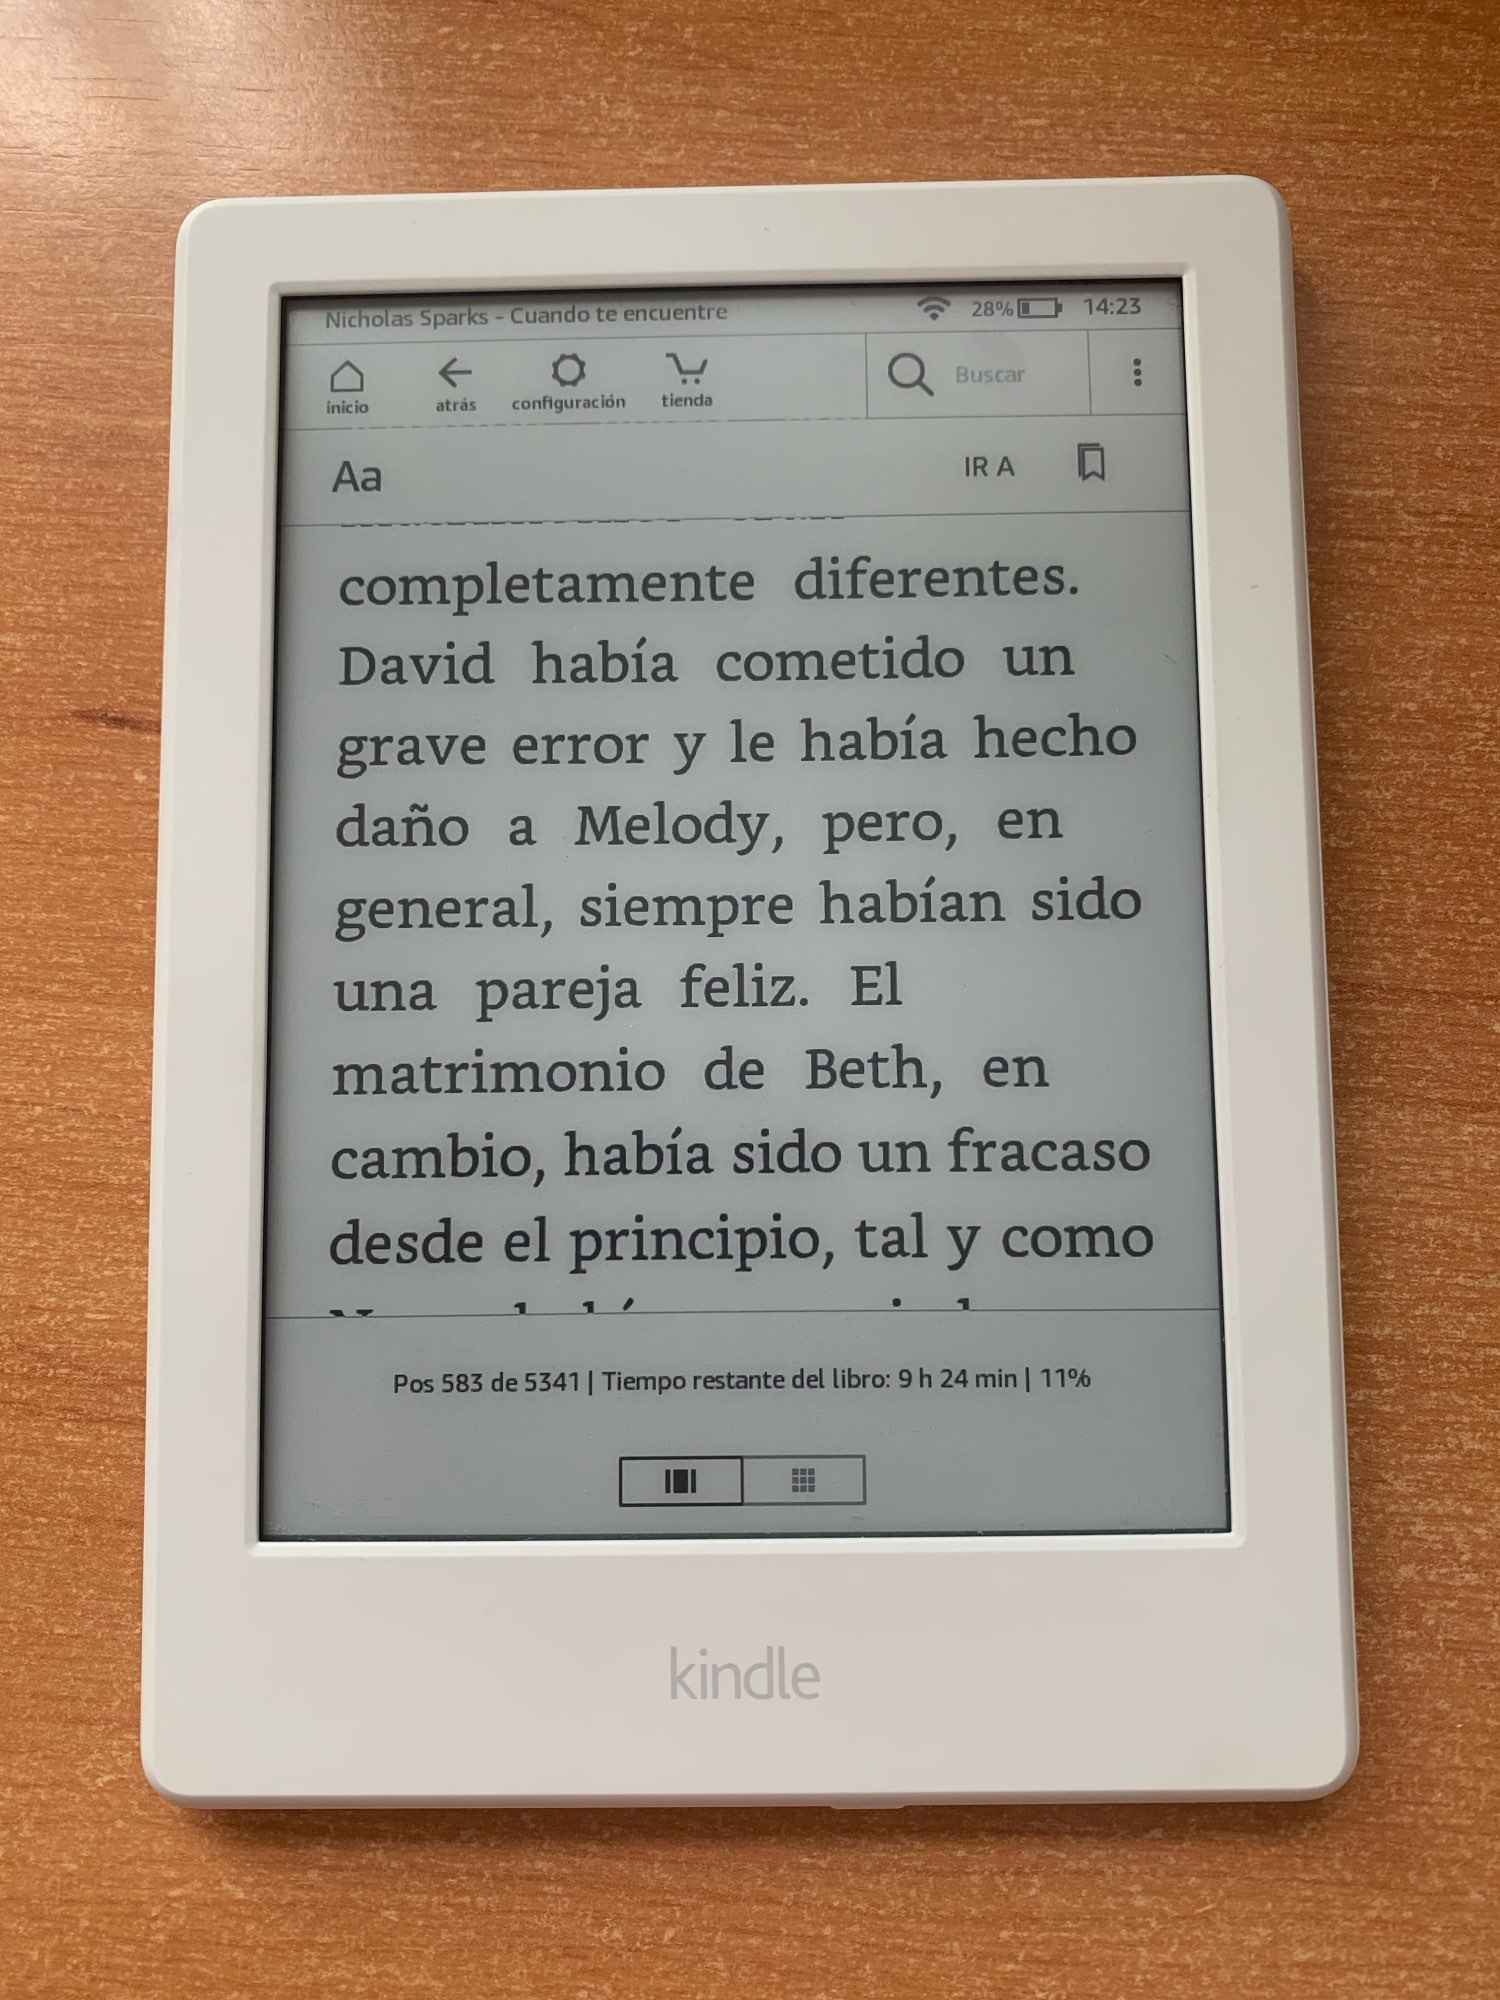 Kindle 8 6 4G Registerable E-Book Reader Touch Screen Ebook Without Backlight  eink e-ink 6 inch Ink Screen E Book enlarge